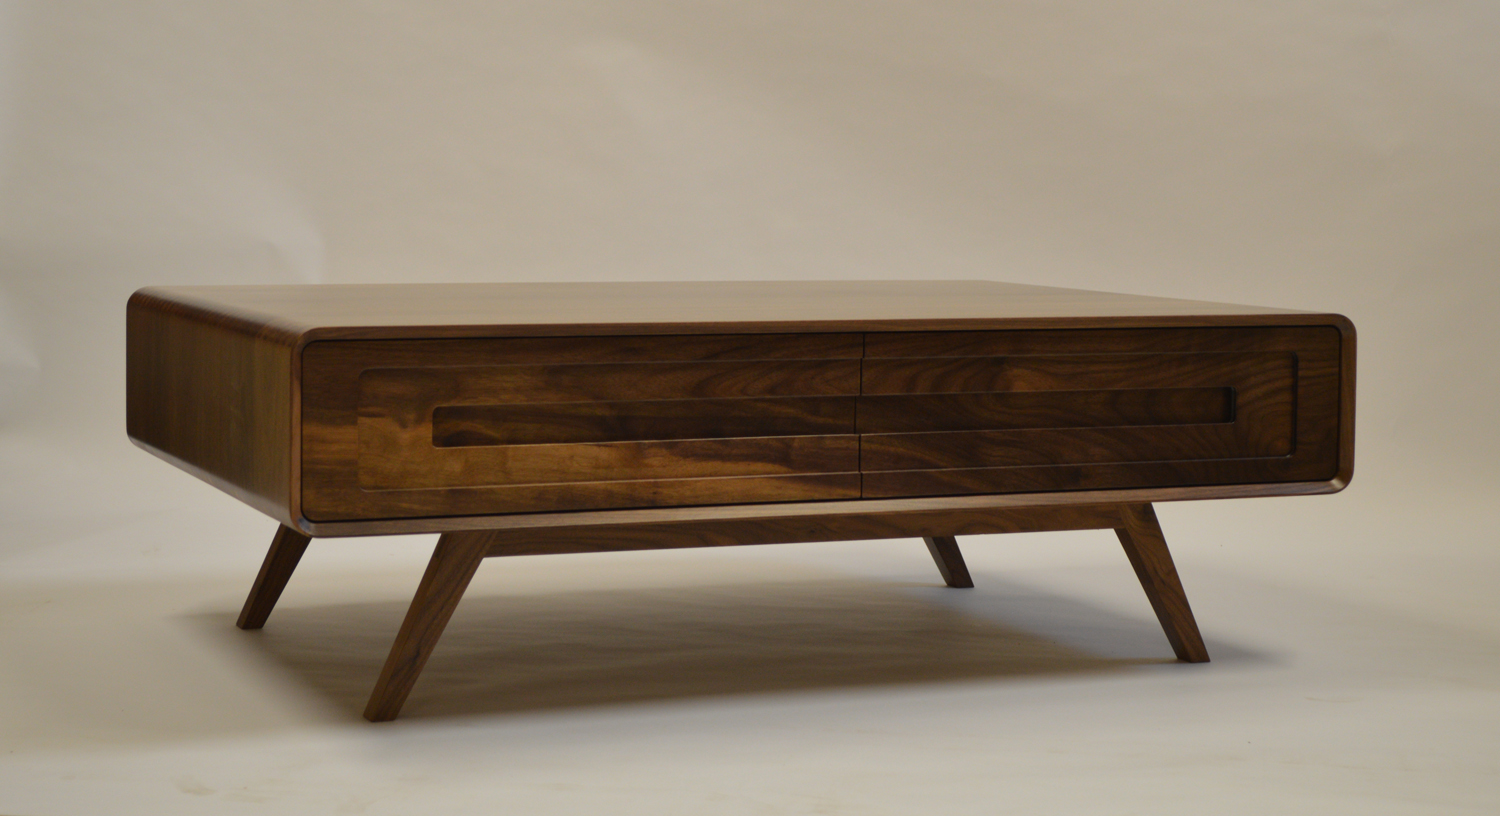 Lunar coffee table joachim king furniture it features two drawers on one side and an open shelf on the other to create useful storage the leg design is taken from the cathcart unit style geotapseo Gallery